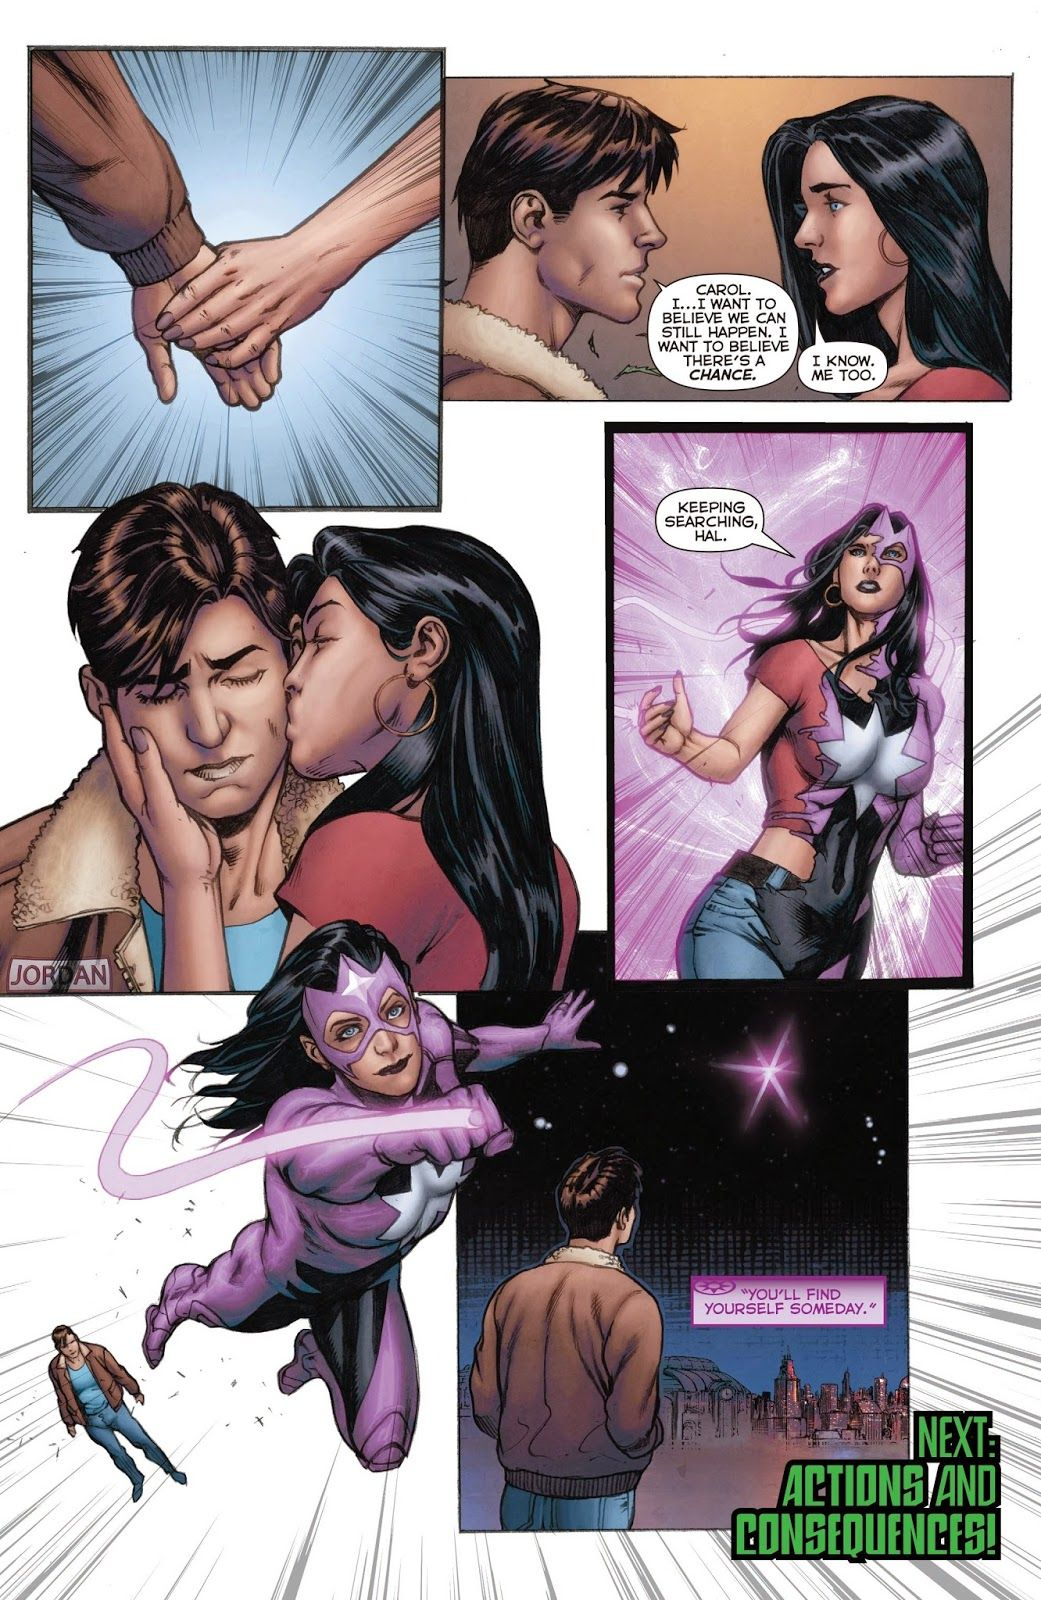 hal jordan and carol ferris relationship marketing